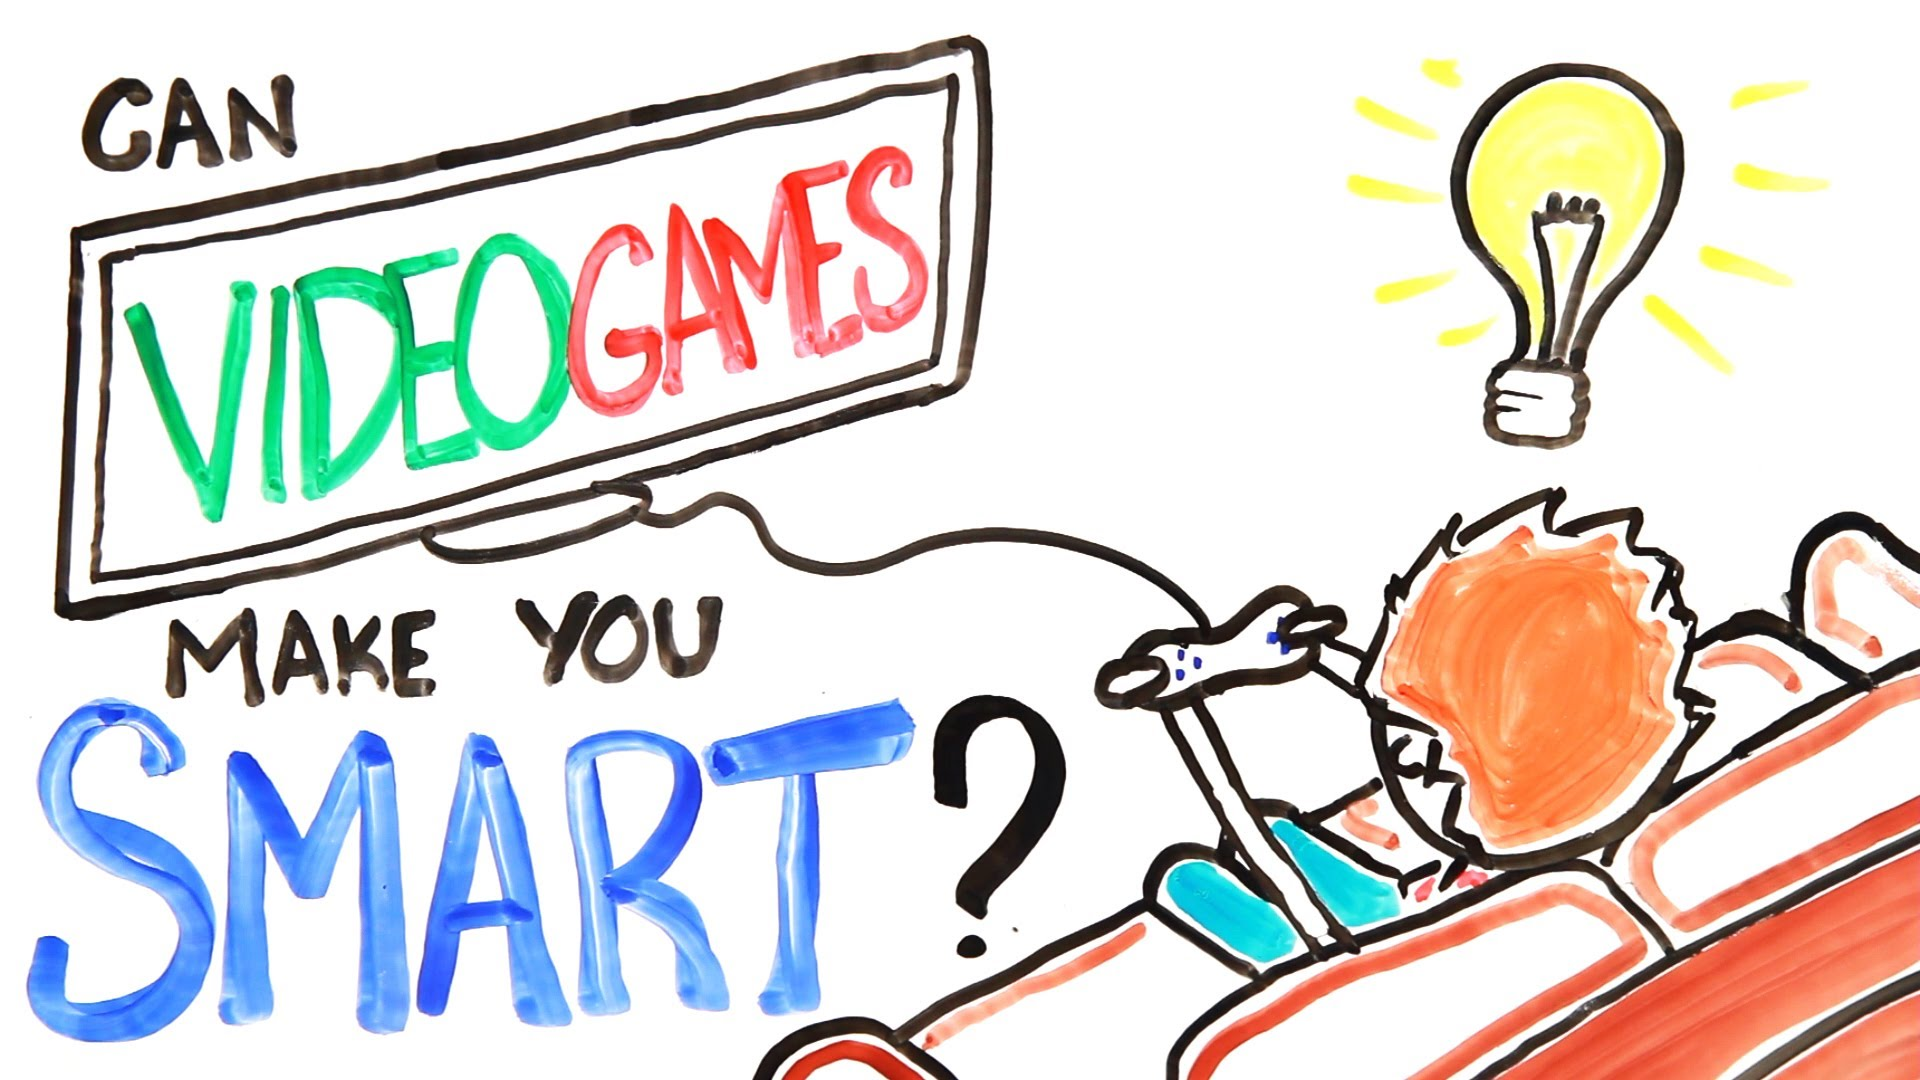 Can Video Games Make You Smarter by AsapScience